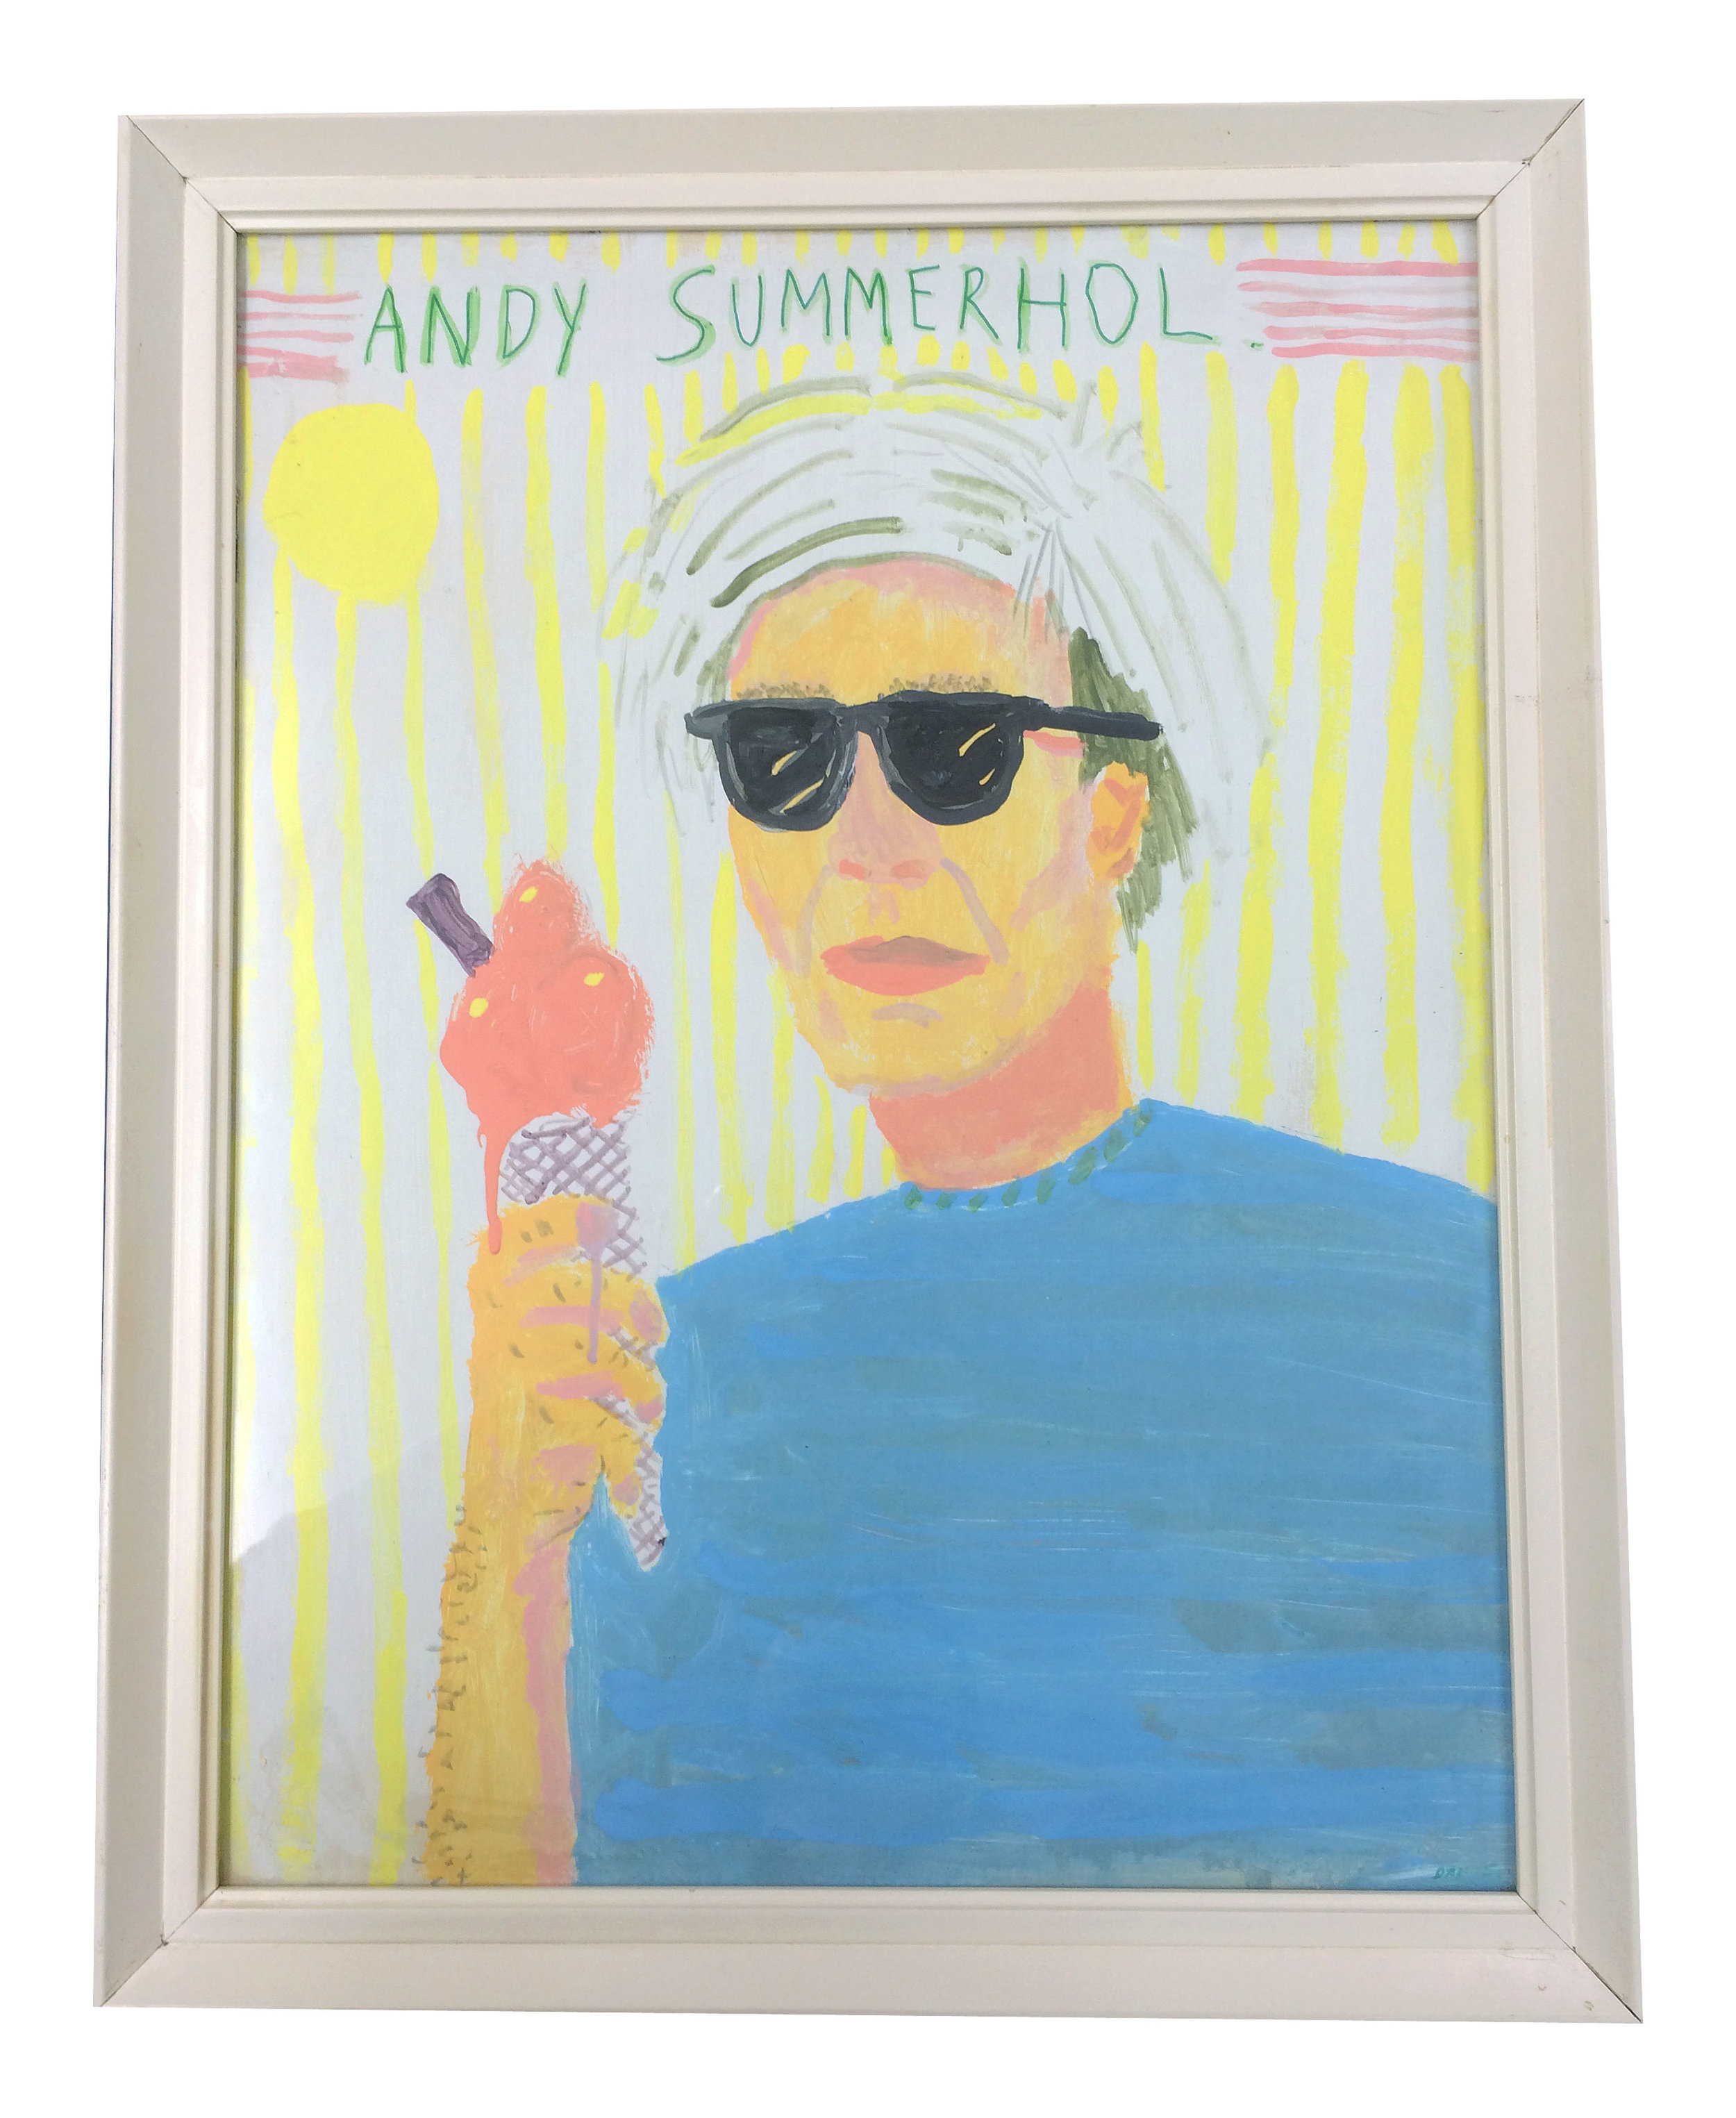 Andy Summerhol, House paint and acrylic on paper, 60x47cm